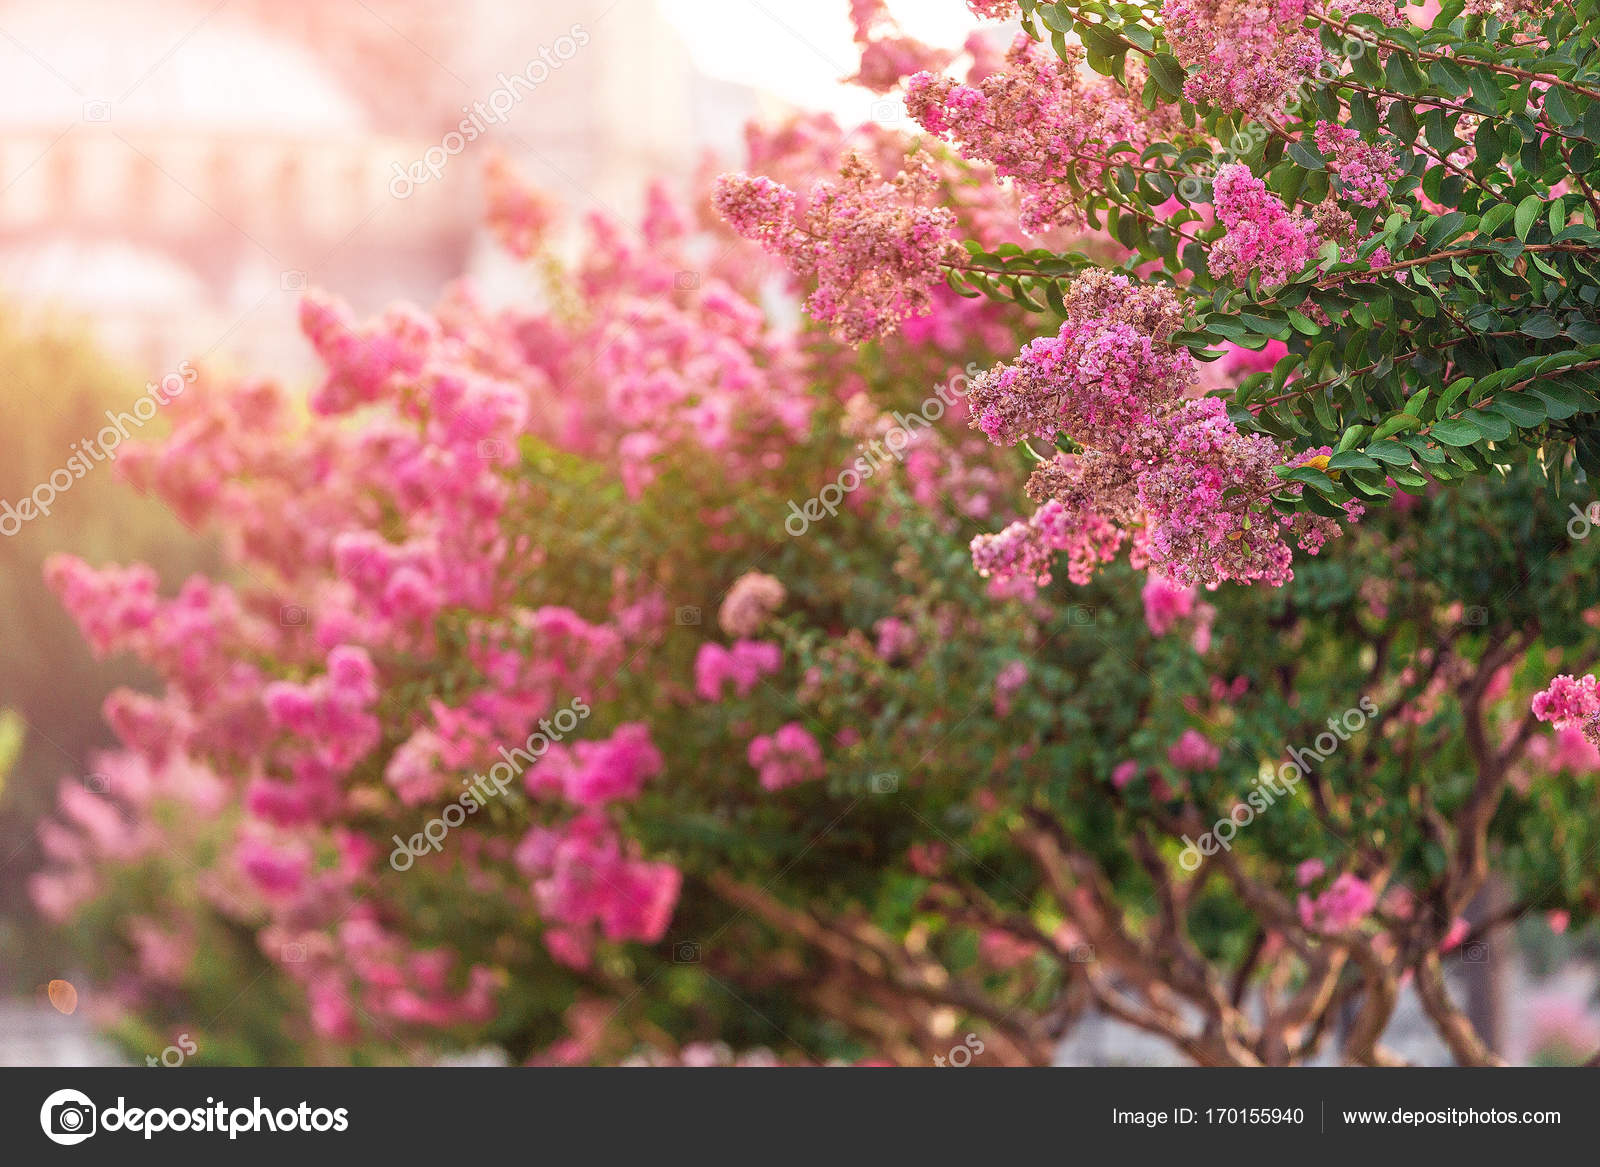 Blooming Magnolia Tree With Pink Flowers At Sultan Ahmet Square In